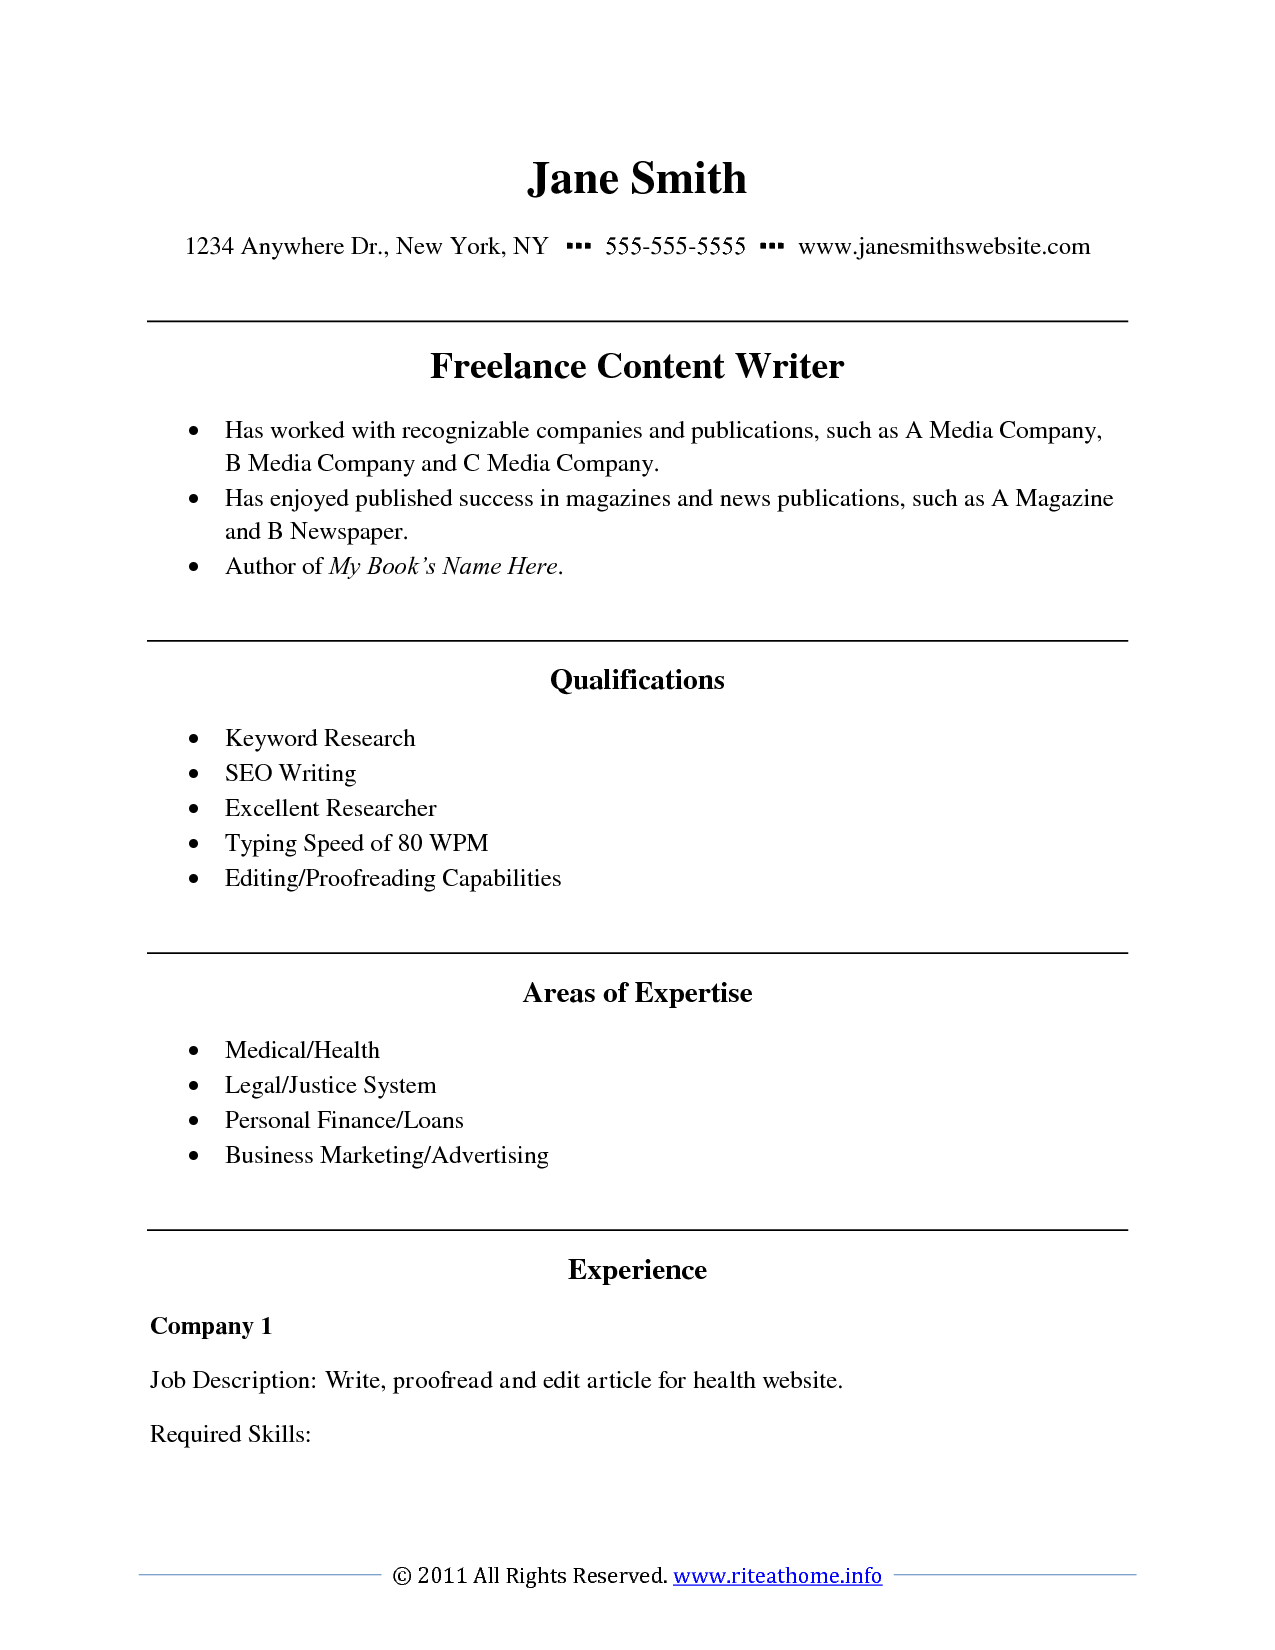 resume writing examples sample resumes hdwriting a resume cover letter examples - Format For Making A Resume